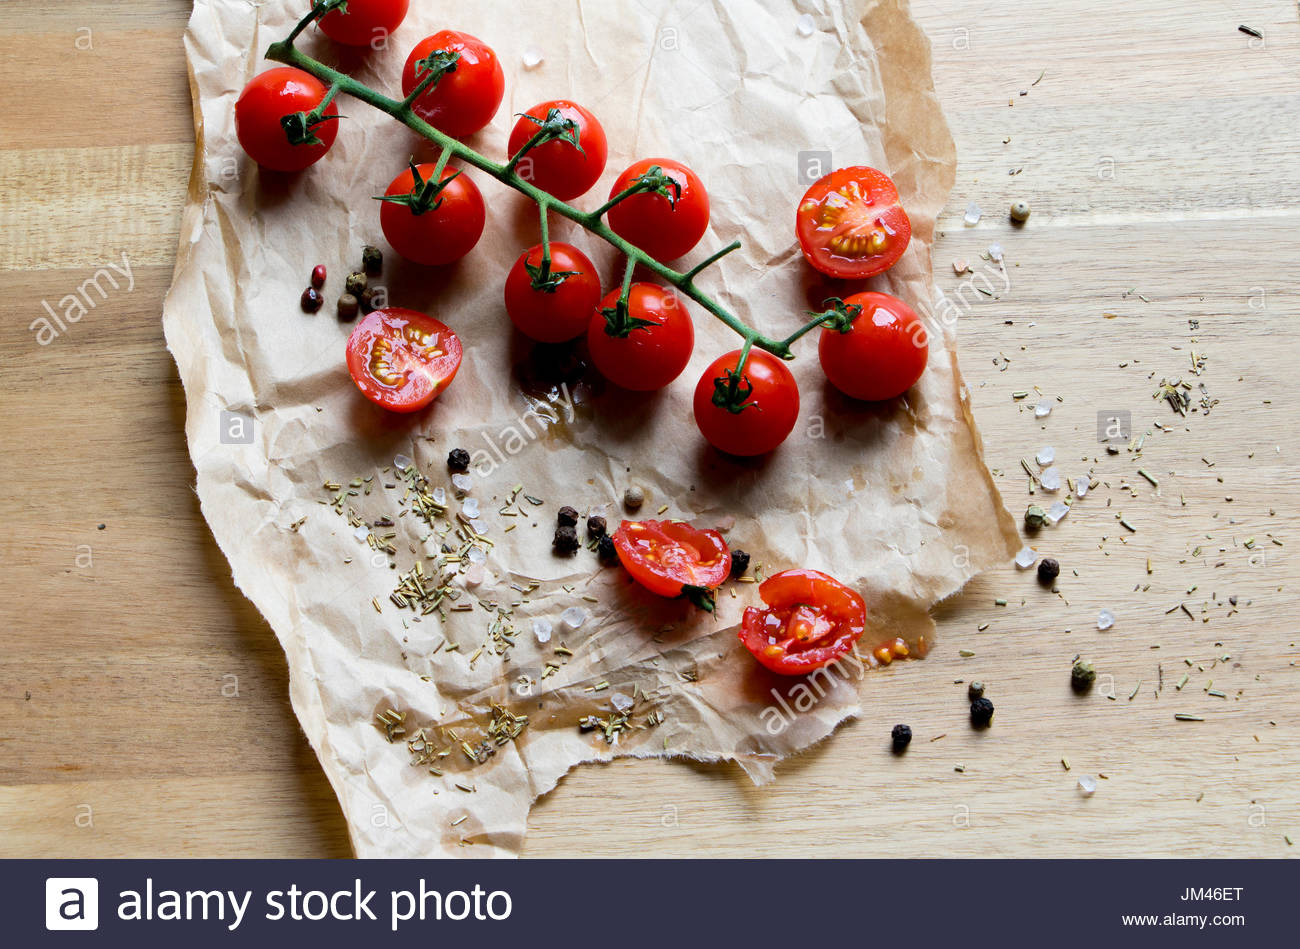 Food cherry tomatoes on brown paper wooden chopping board red tomatoes halved tomatoes patch, lunch break rustic image - Stock Image